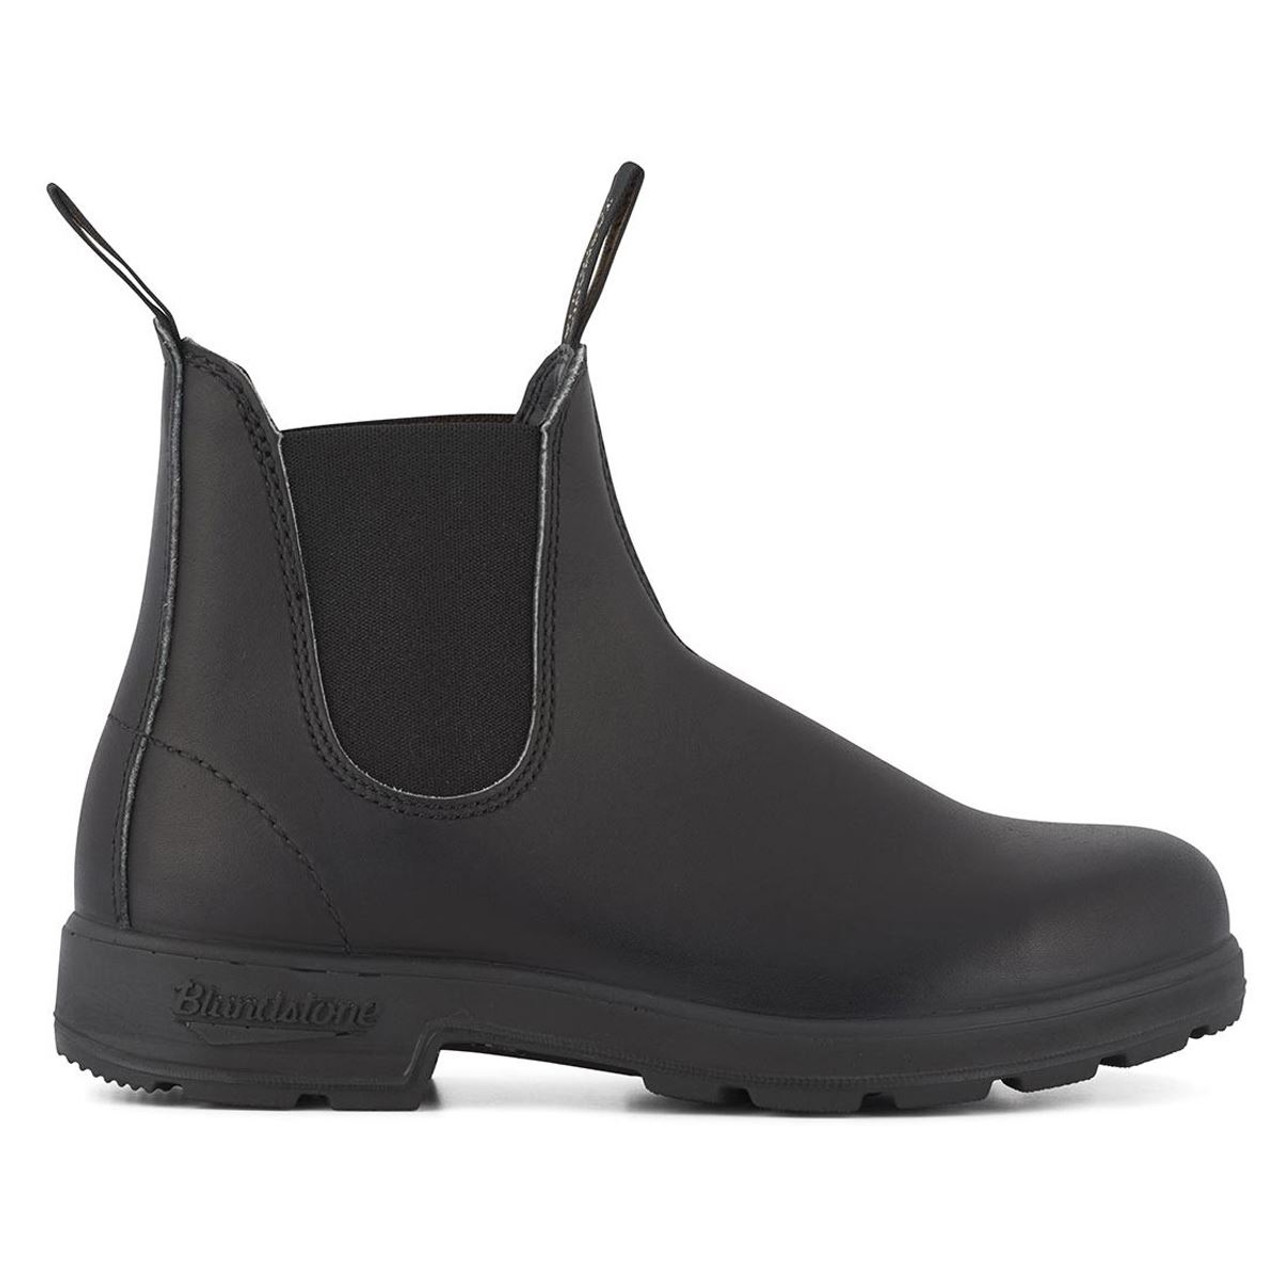 Blundstone Classic 510 Chelsea Boots